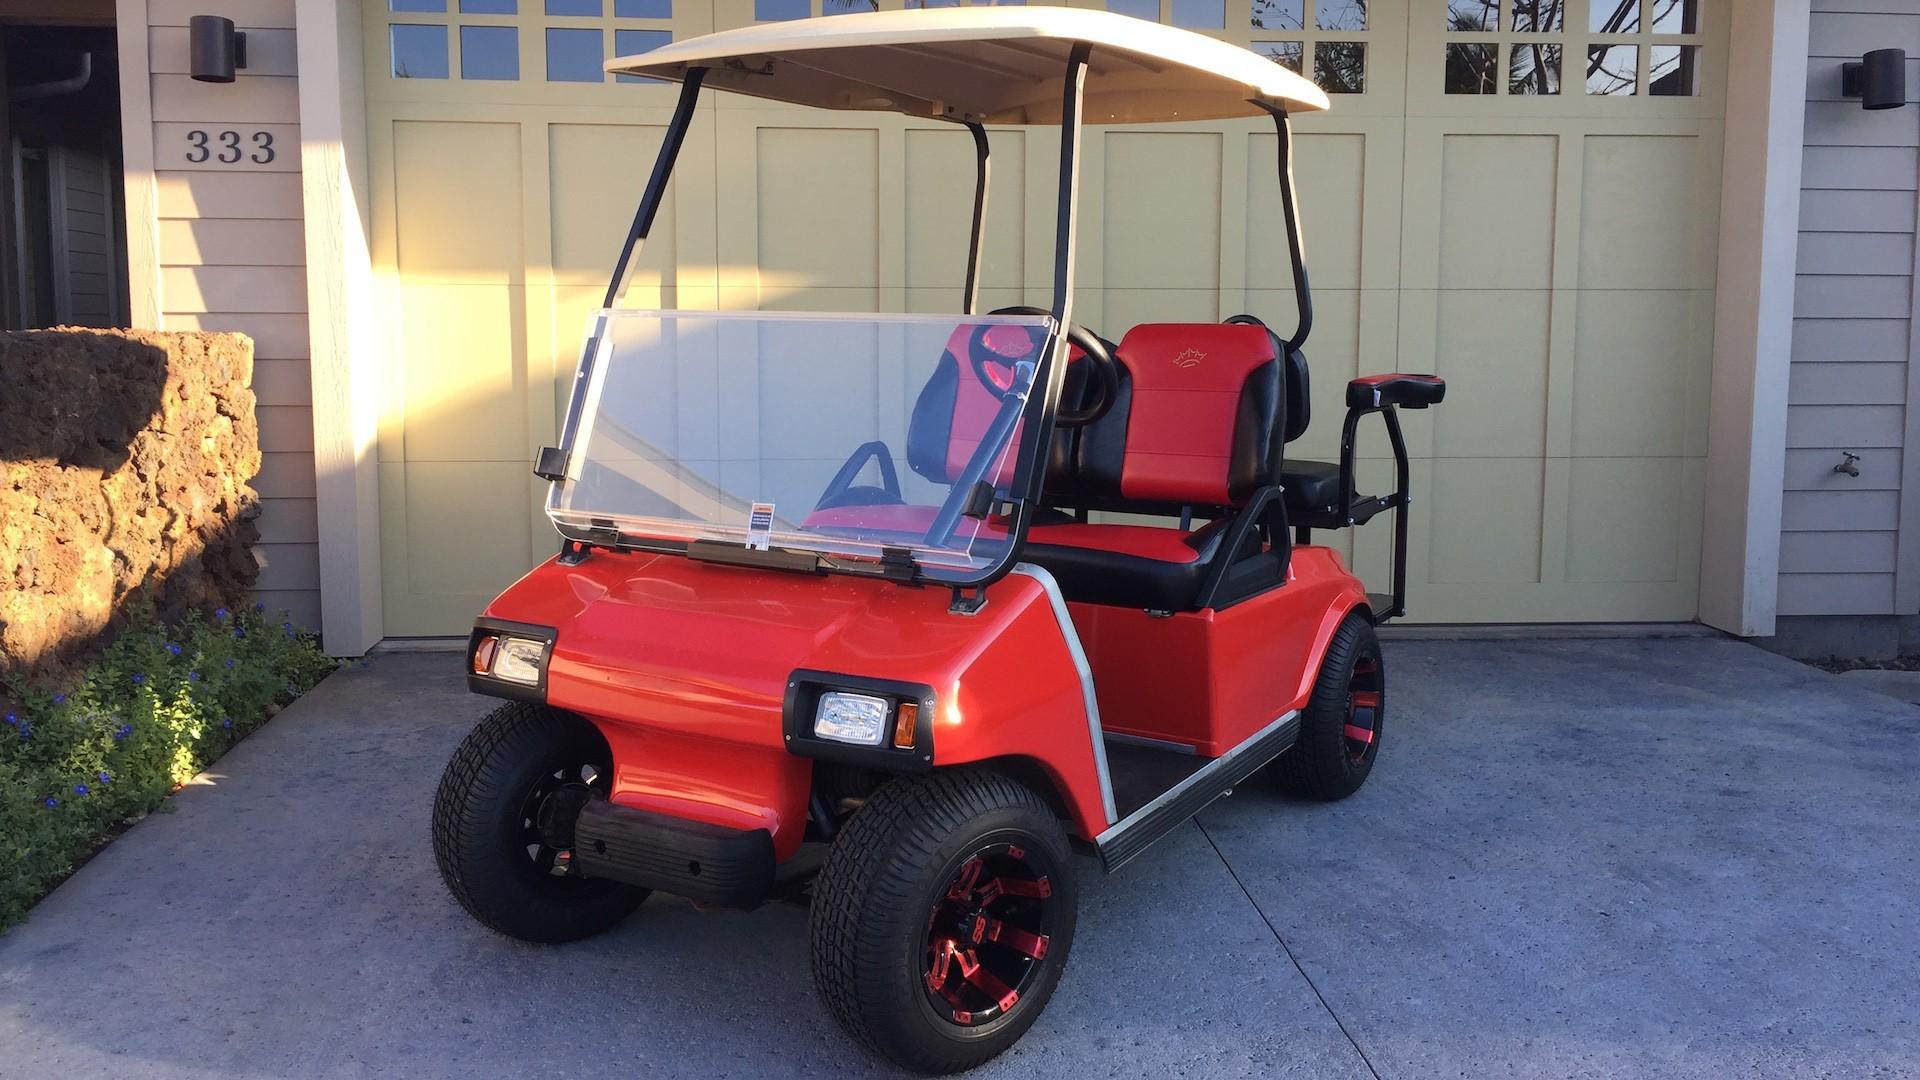 Each rental comes with complimentary use of a four-seater golf cart!